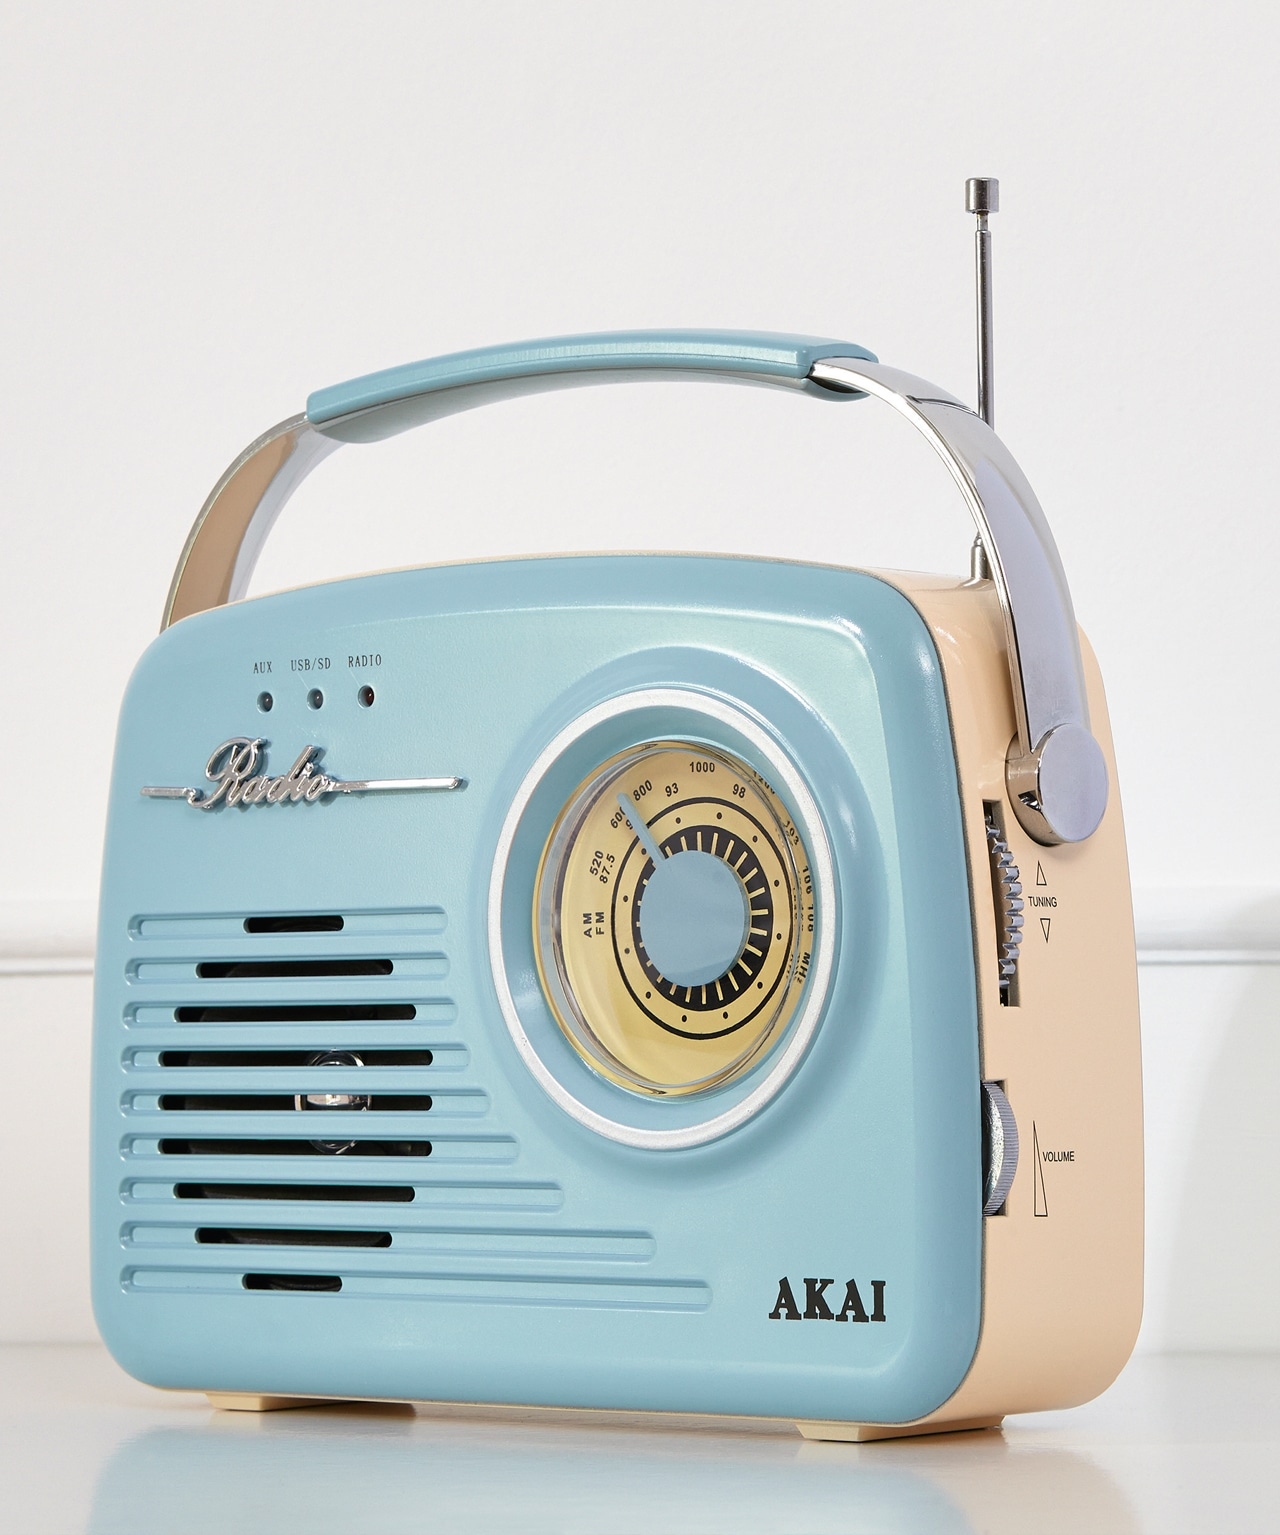 FINISHING TOUCHES FOR YOUR GARDEN - A stylish radio you can use in the garden to brightne up your days.